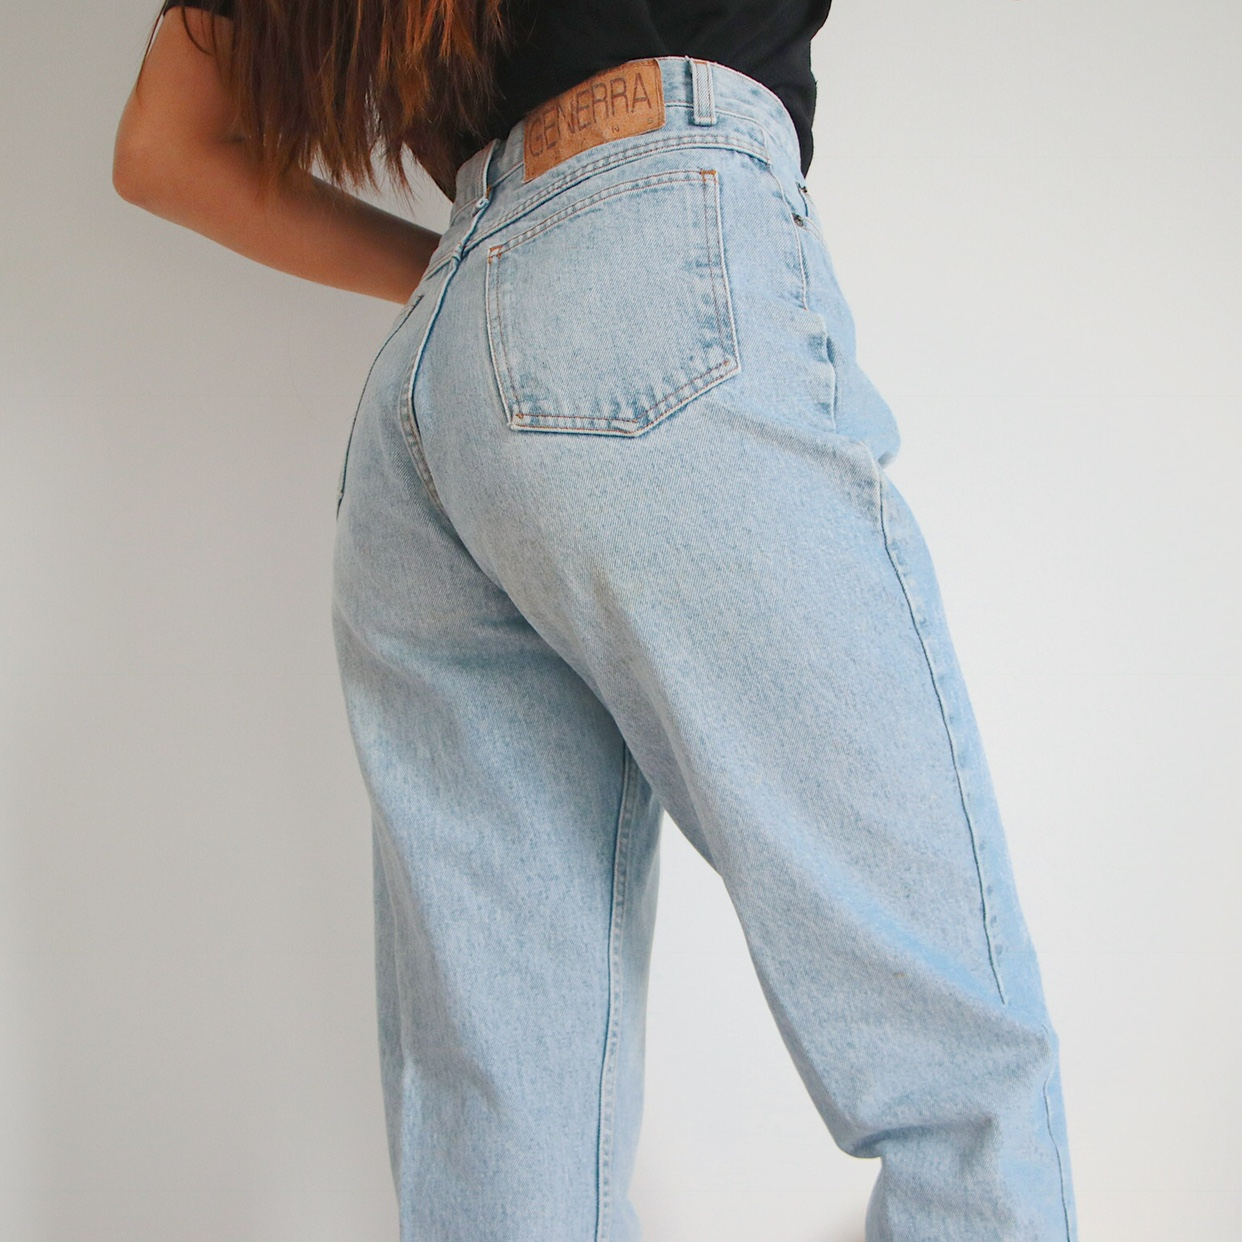 Light wash high waisted mom jeans. The 90s vintage , Depop